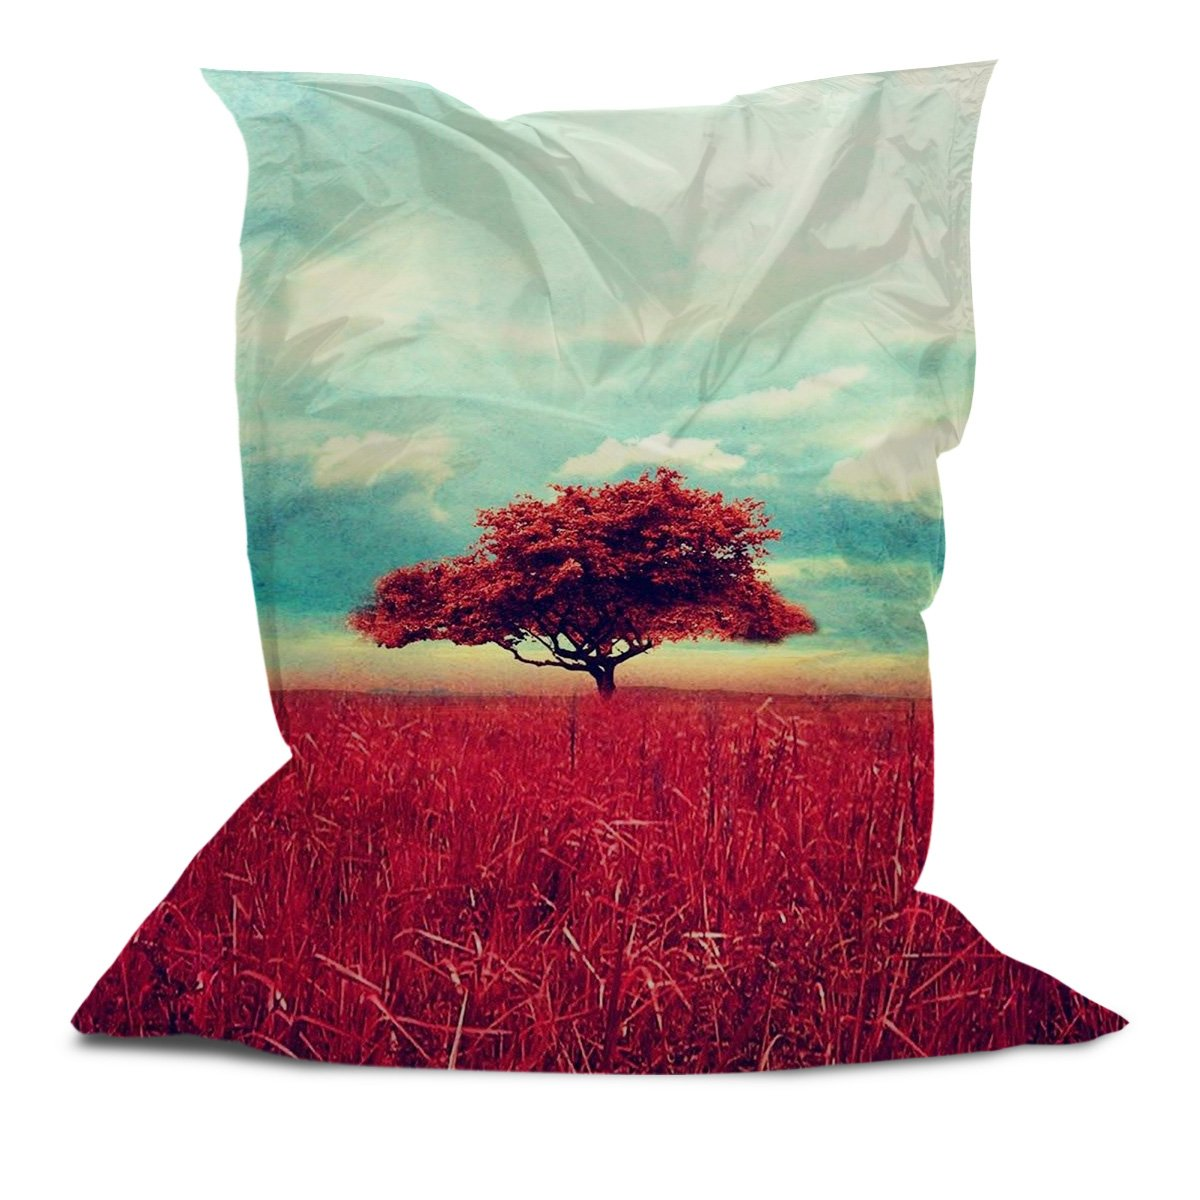 Branded Bean Bag with Printed Tree (5' x 4.4')